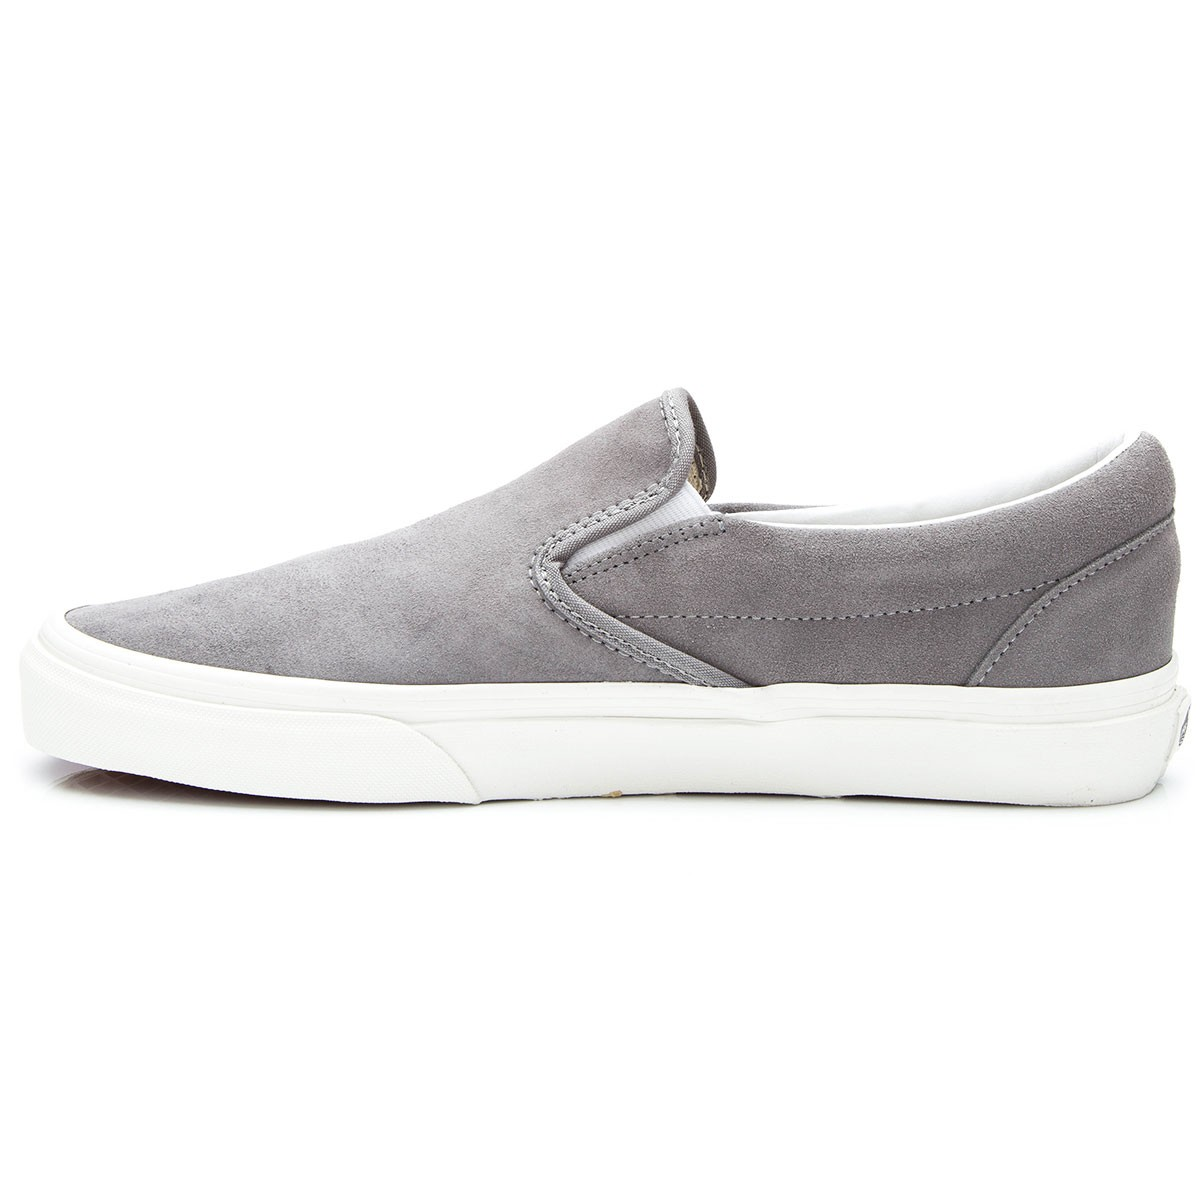 91c1b075d012 Buy vans slip on frost grey